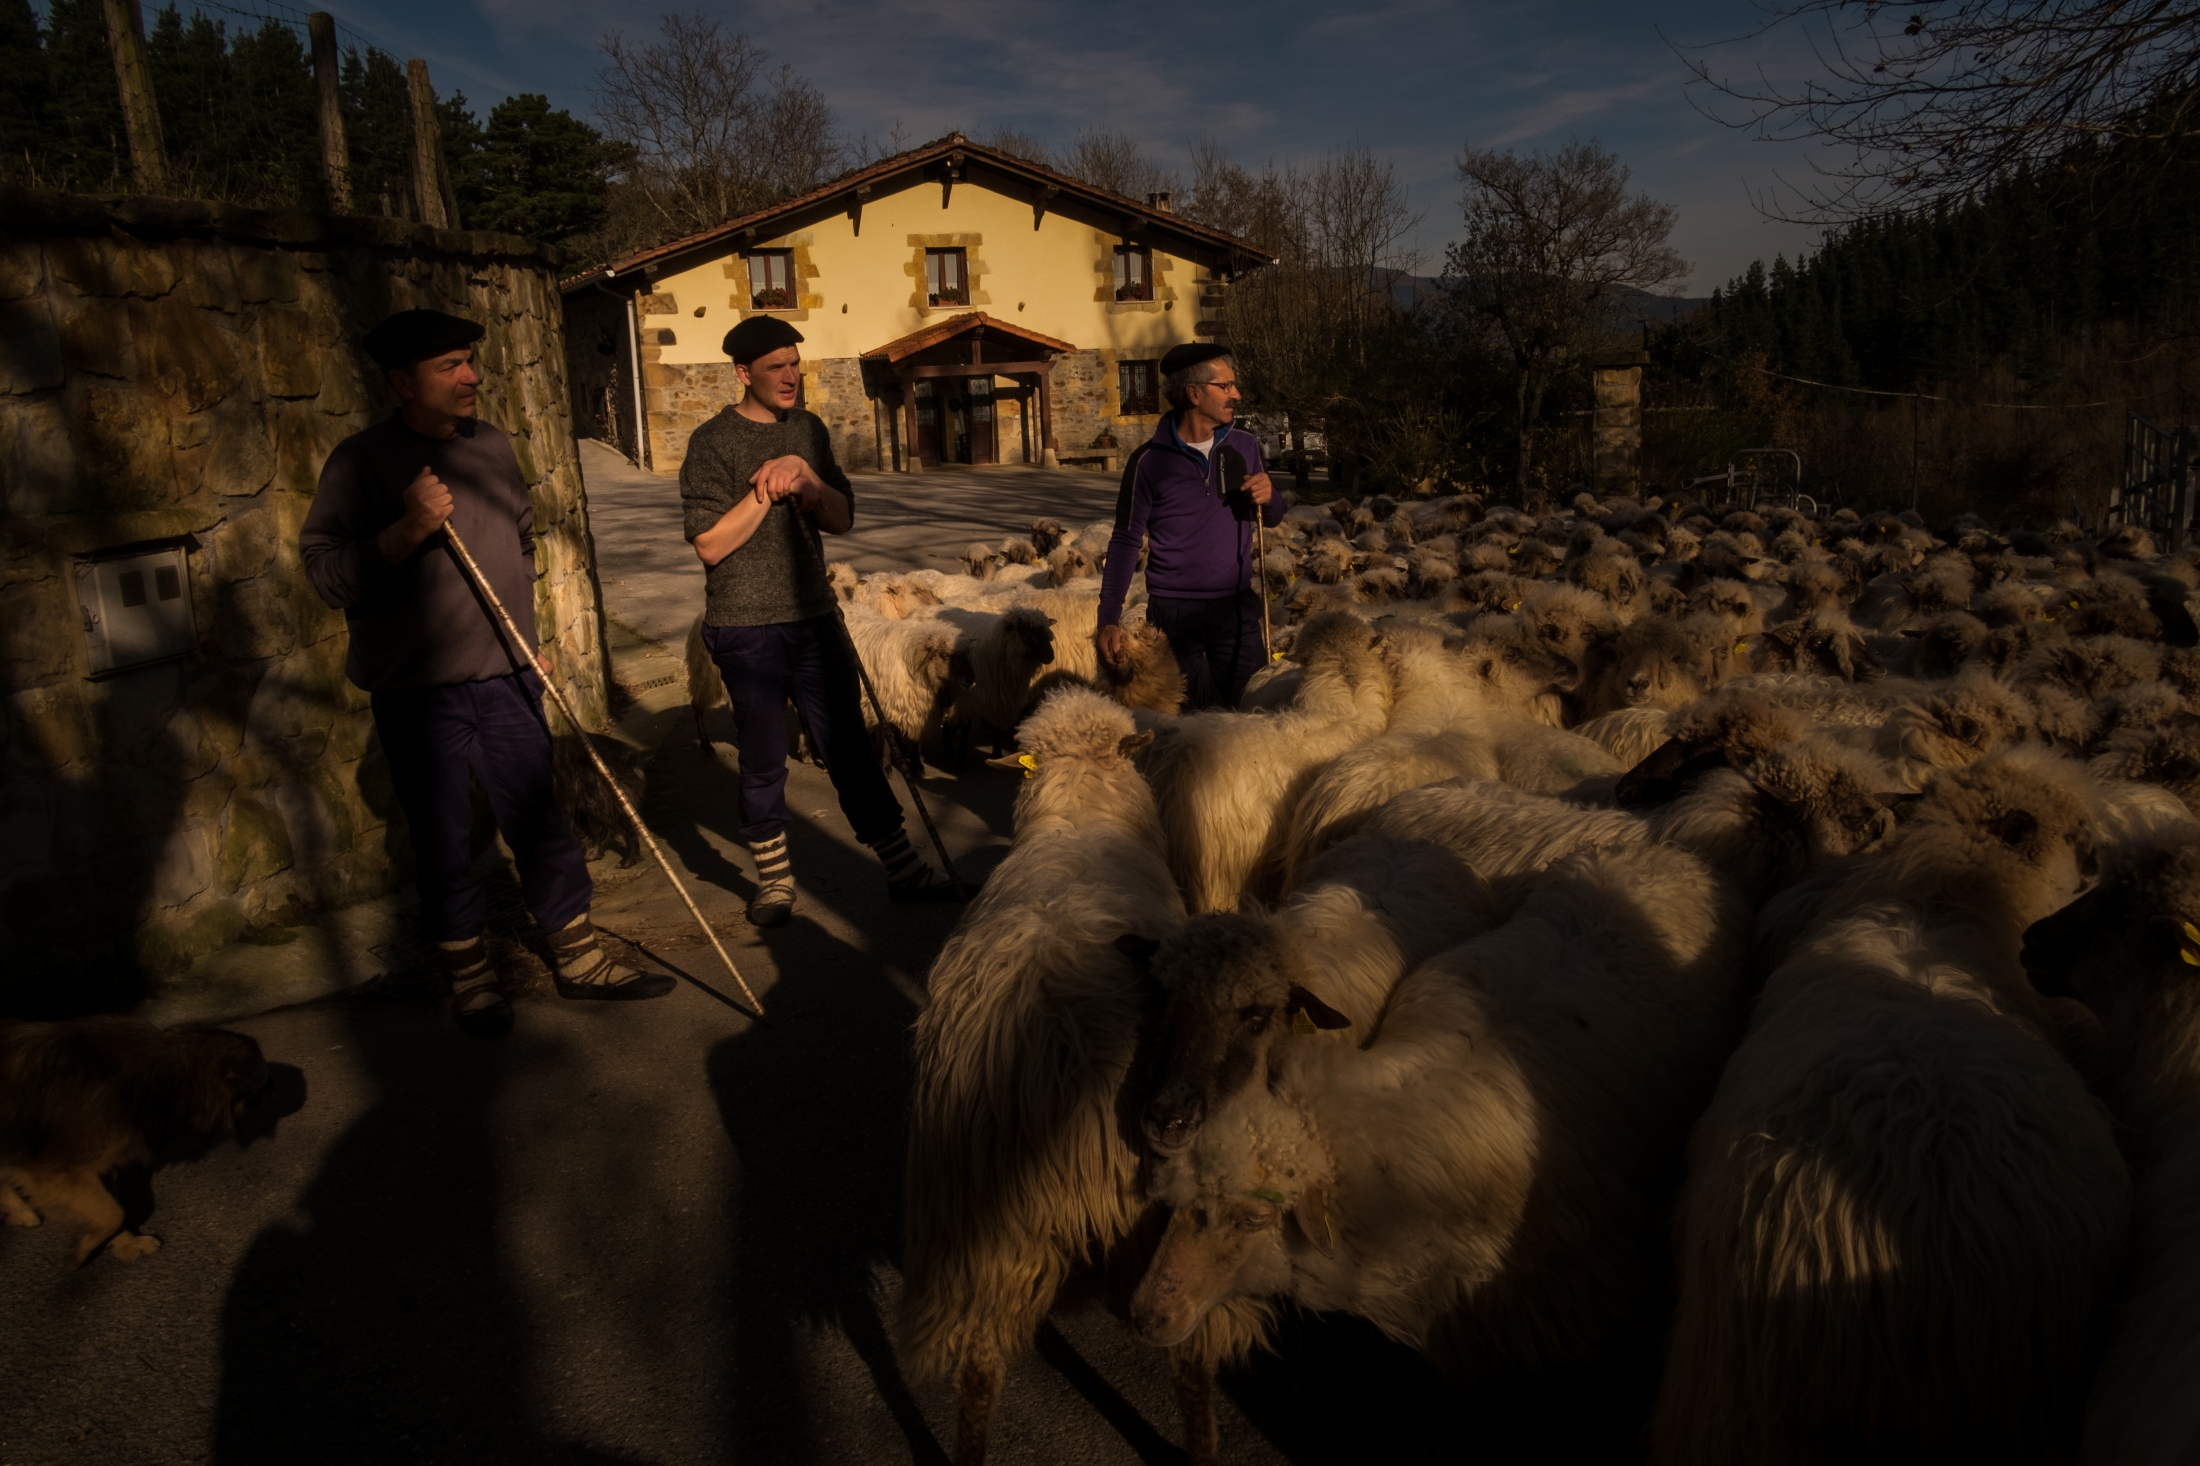 After a couple of hours, Aitor, his father and uncle gather the flock of sheep in front of the farm.